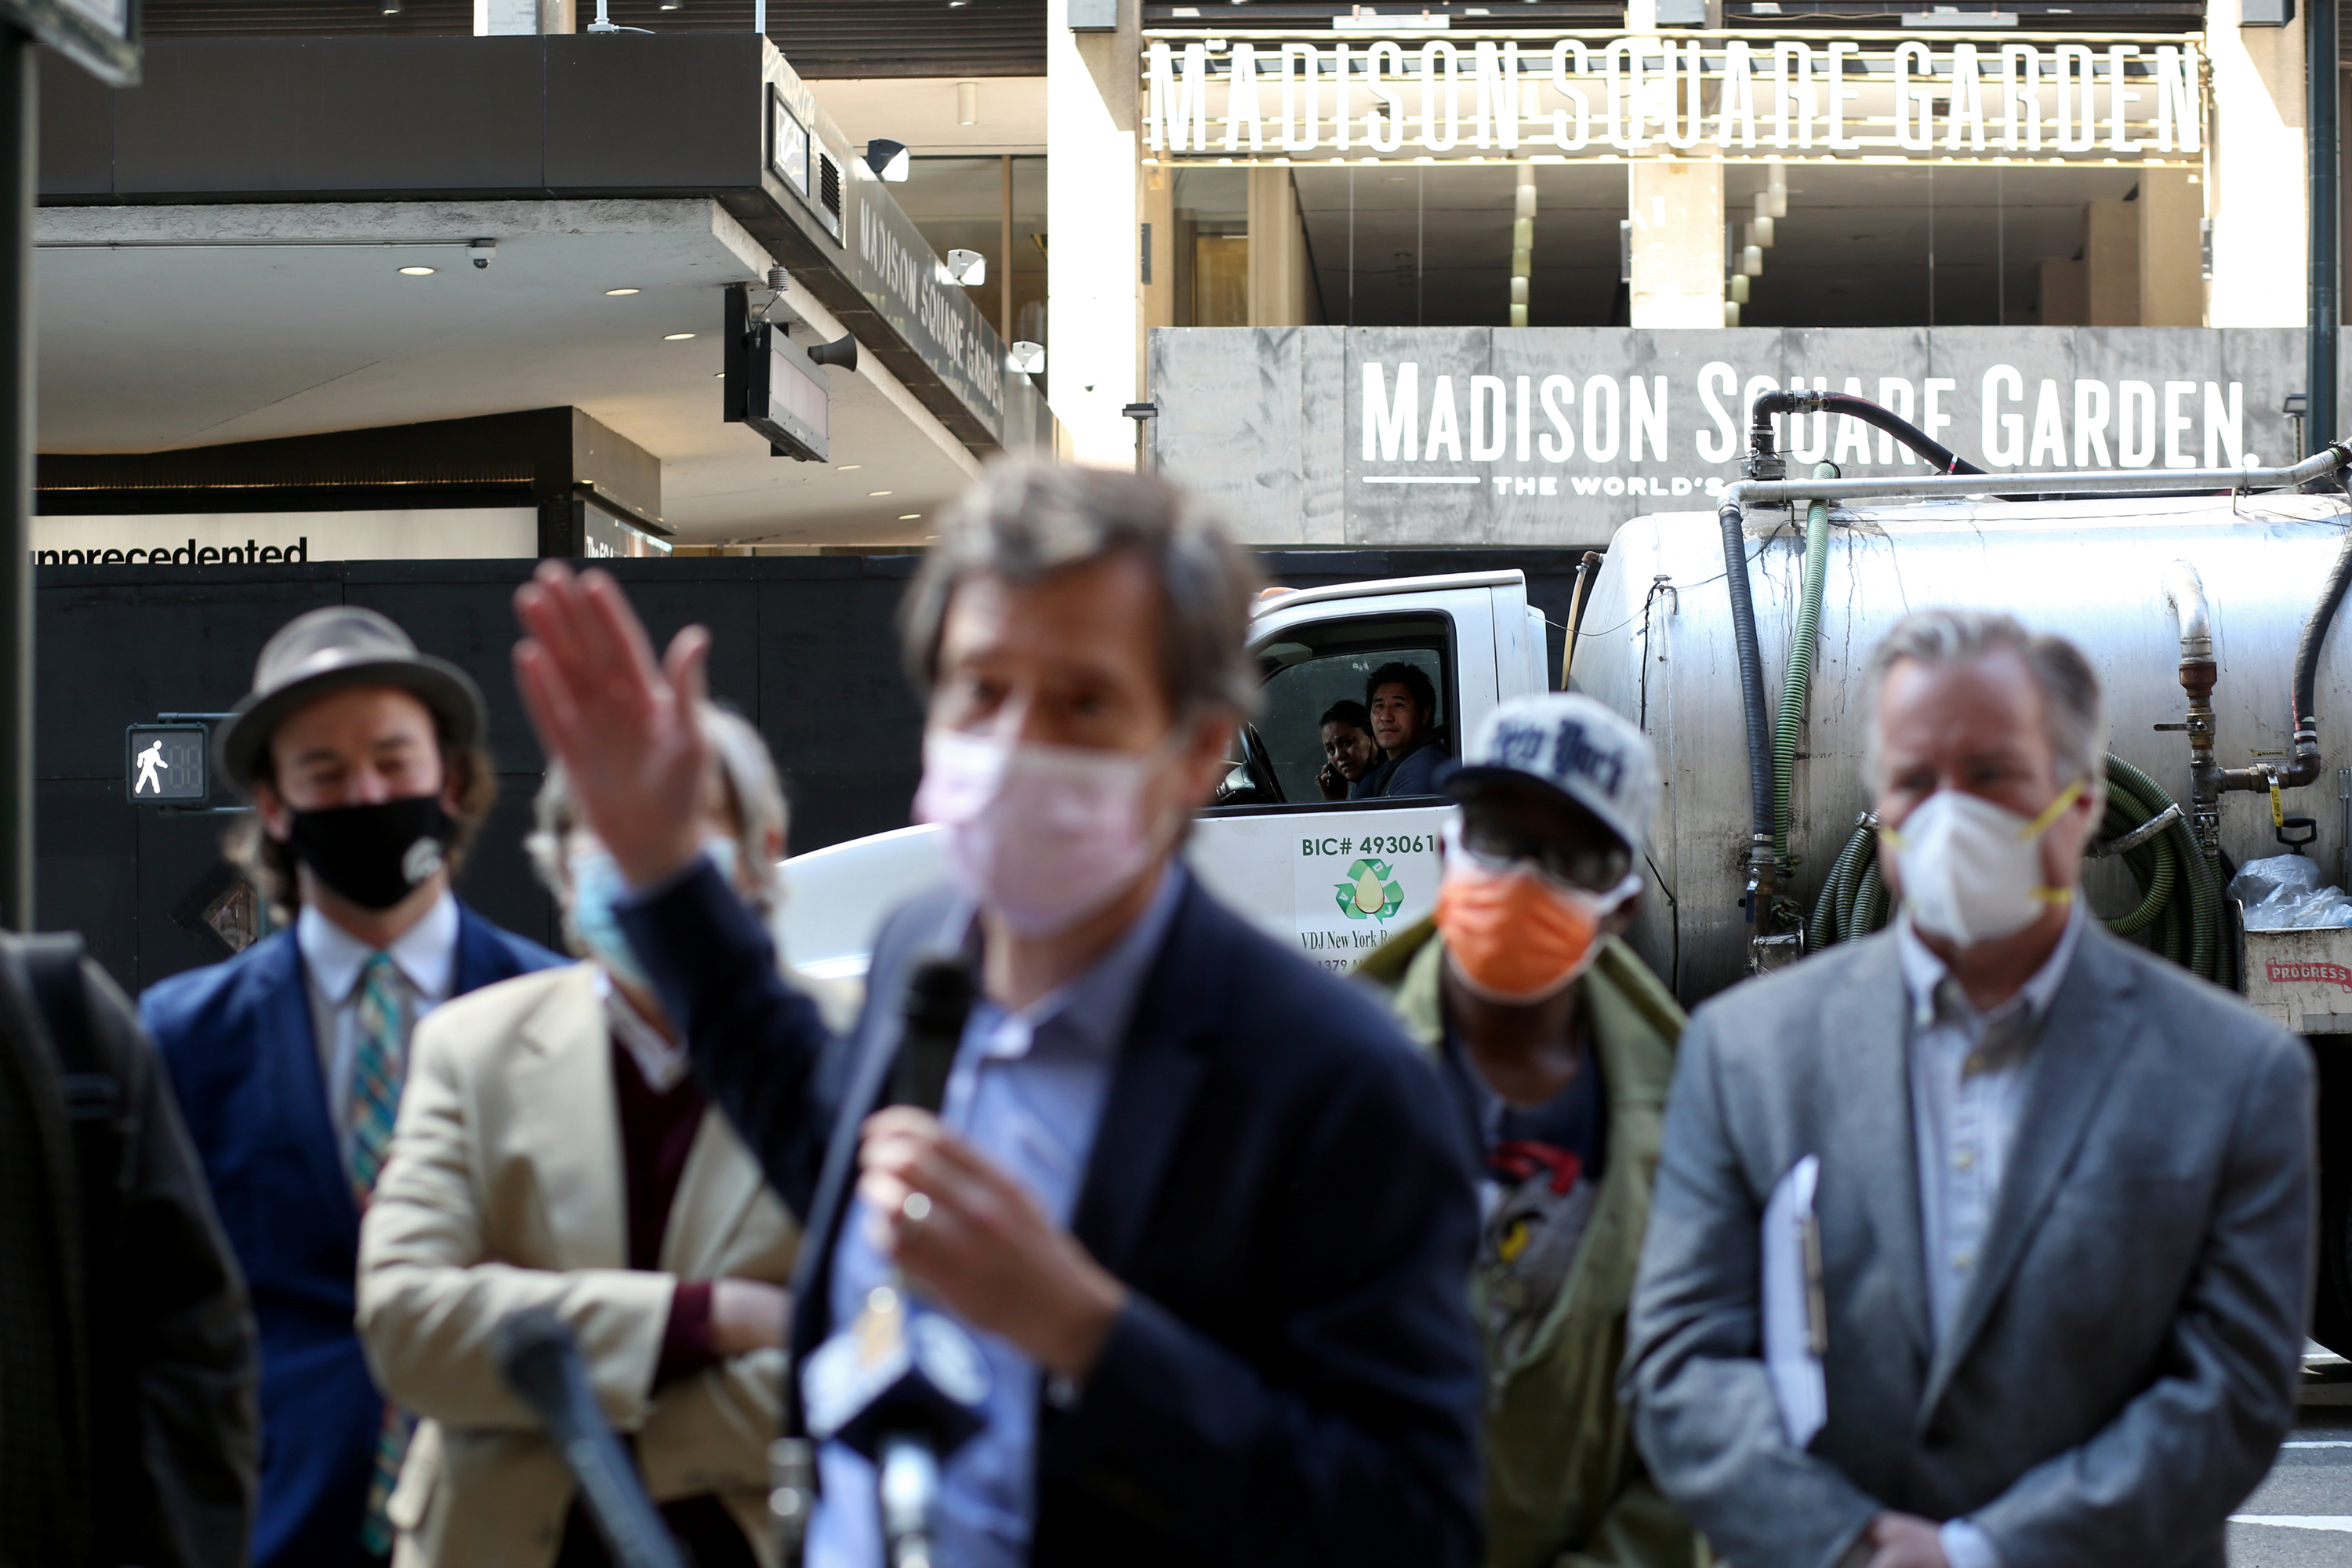 Motorists look on as New York State Senator Brad Hoylman speaks at a news conference for transit advocates, civic groups and residents in protest of Governor Andrew Cuomo's Empire Station Complex in Manhattan, on April 7, 2021.